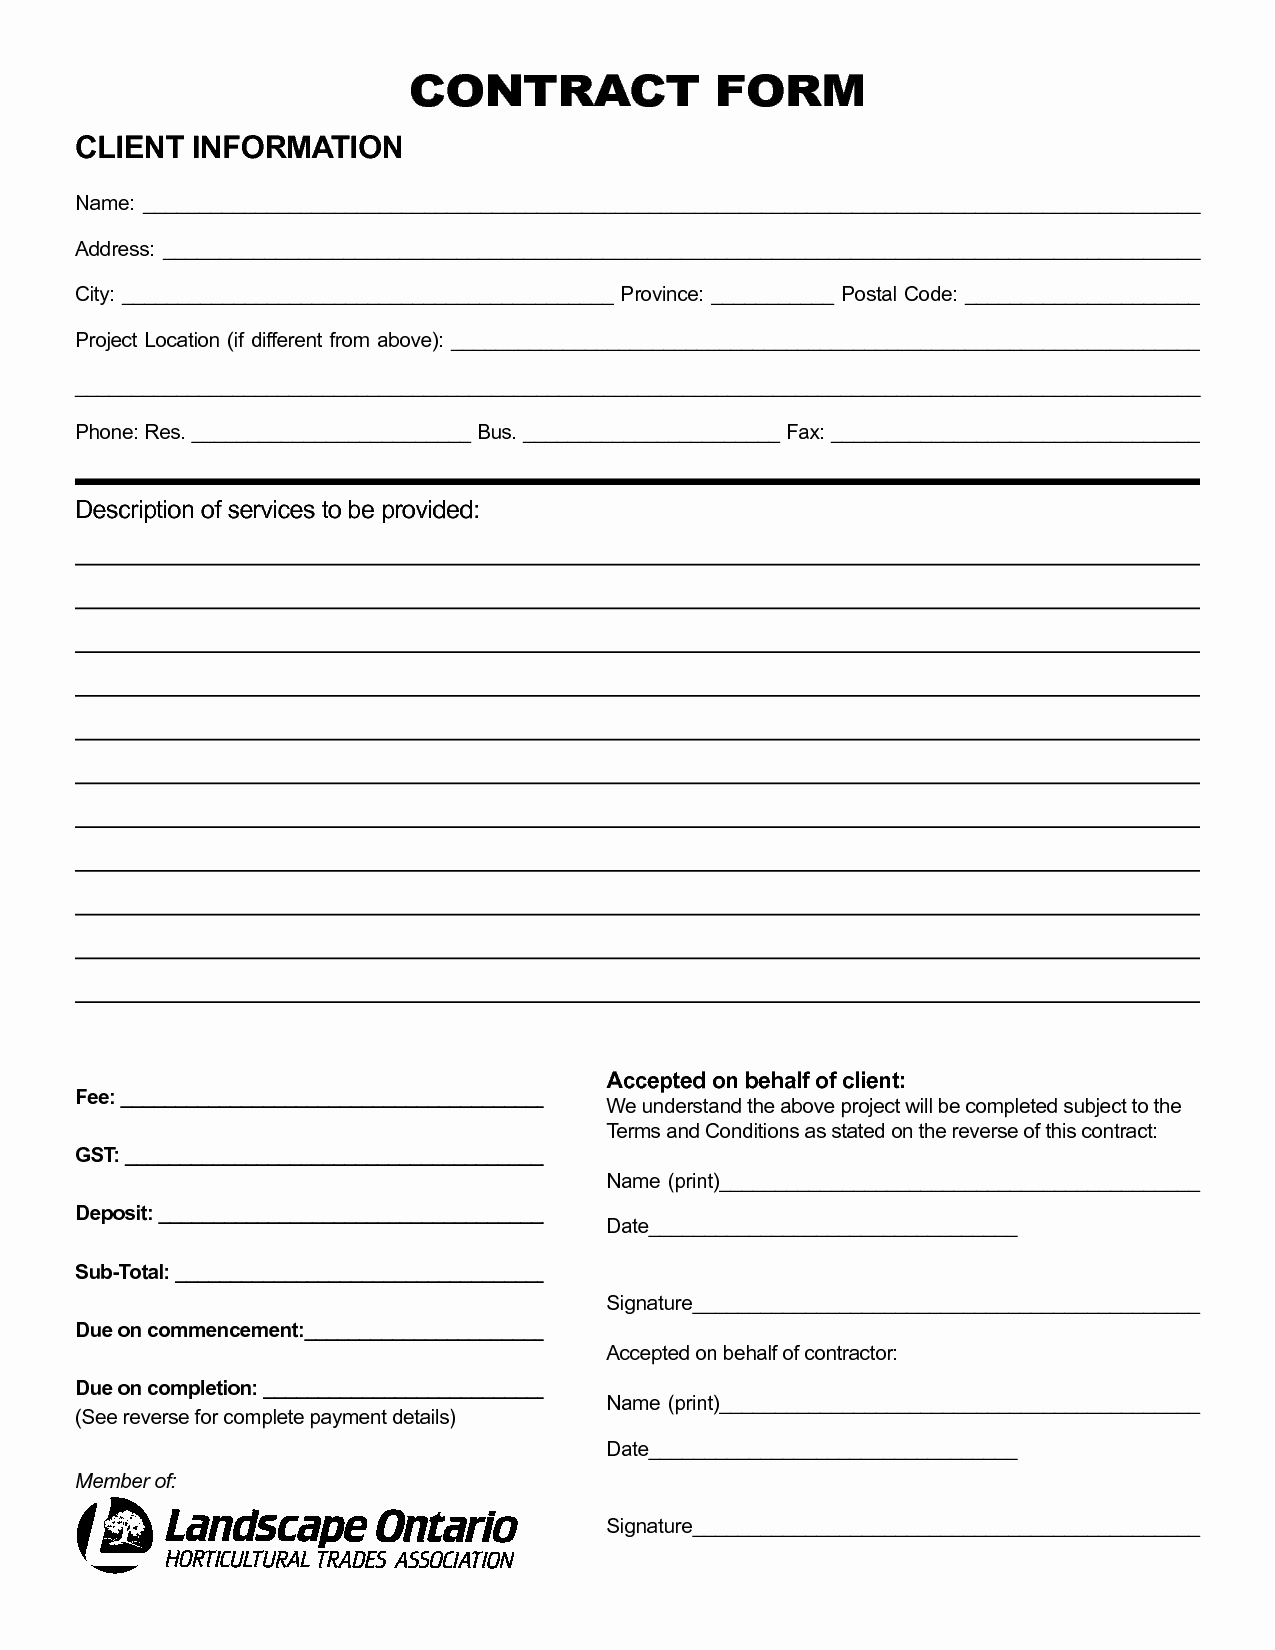 Lawn Service Contract Template Awesome Contract forms Free Real State